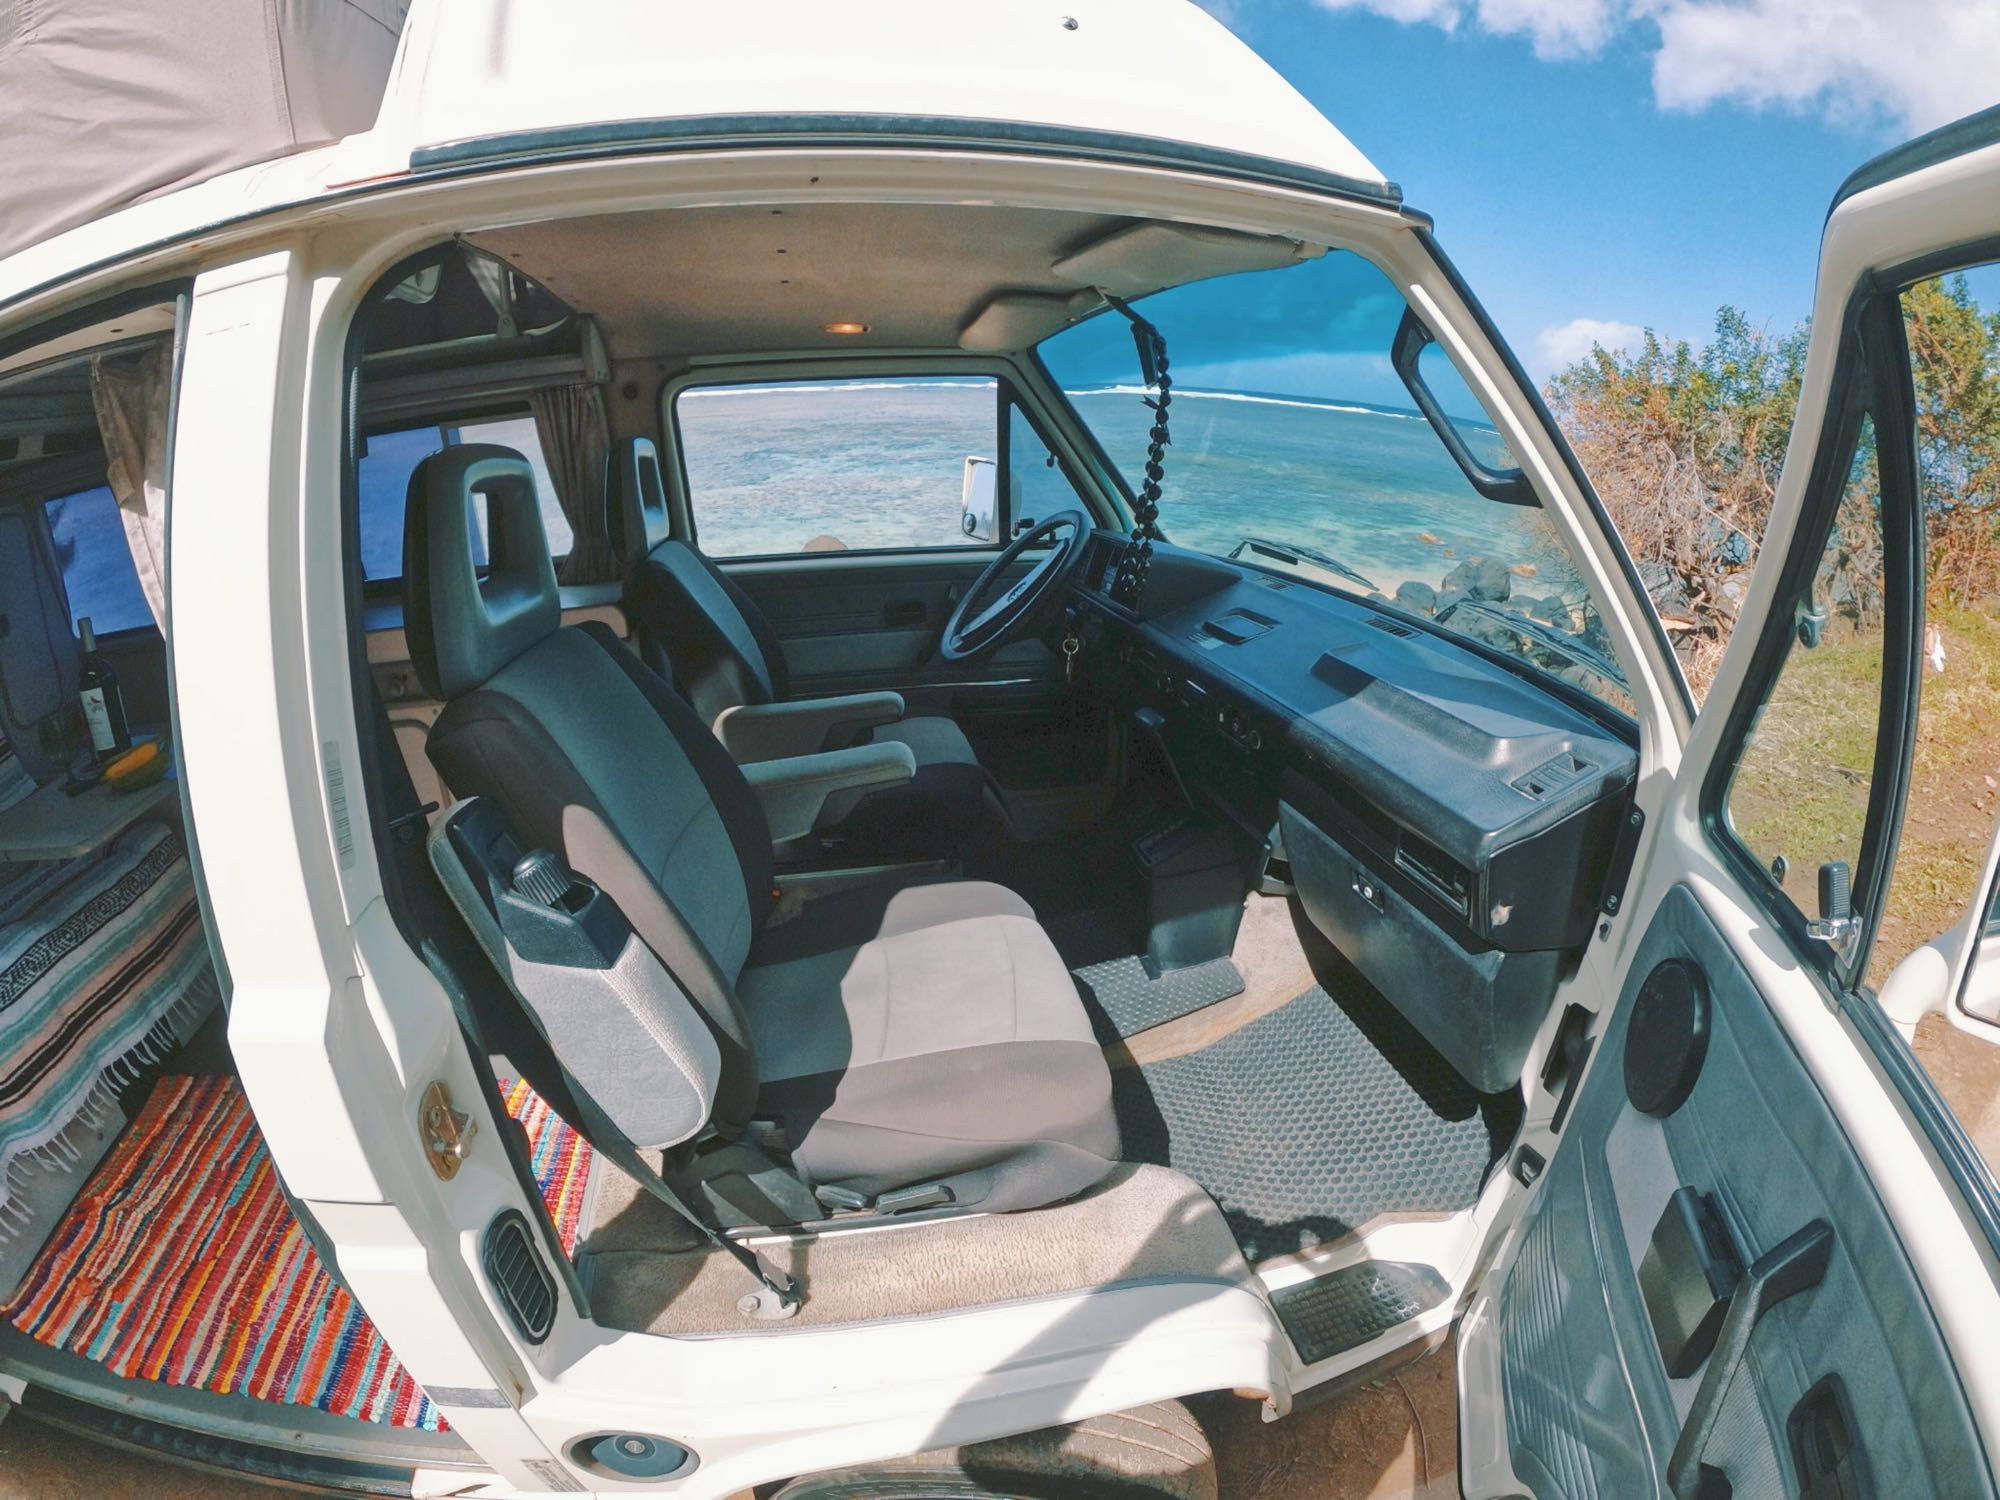 Cruise the island in style and comfort. The front seats swivel to face each other, and face the back so you can lounge in comfort.. Volkswagen Vanagon 1990